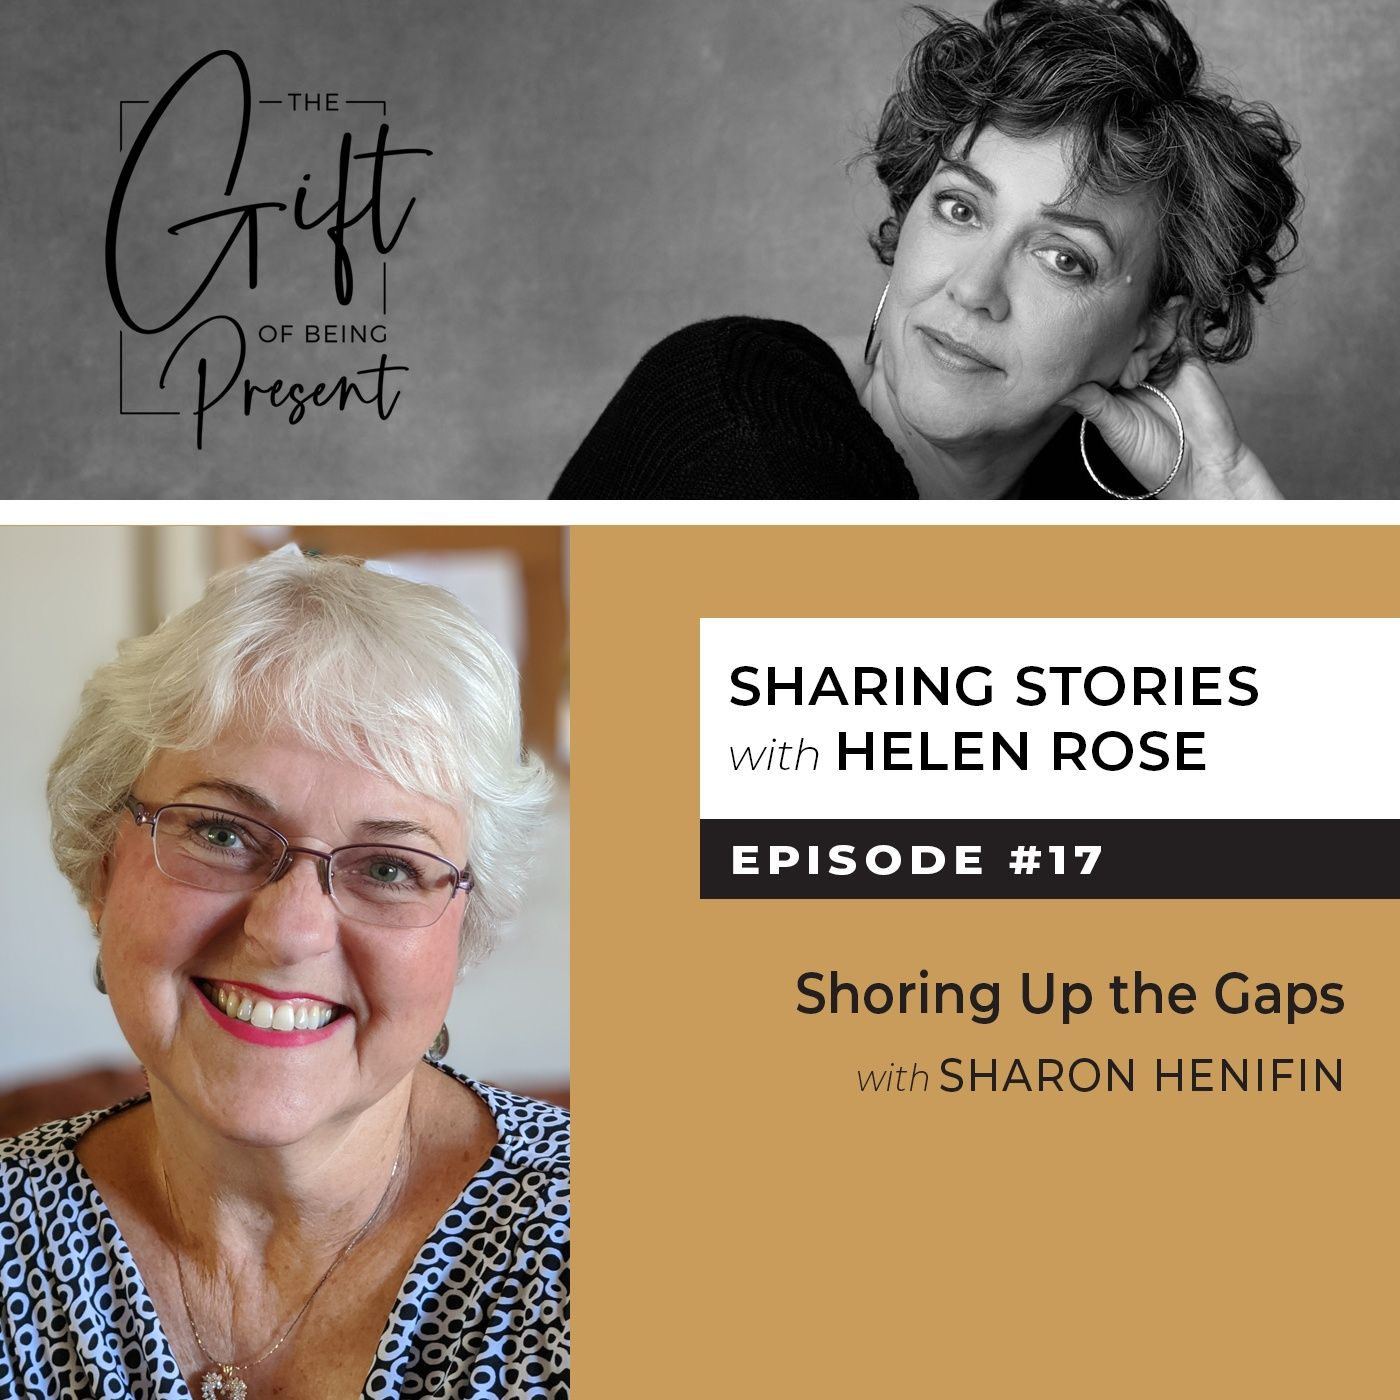 Shoring Up the Gaps with Sharon Henifin